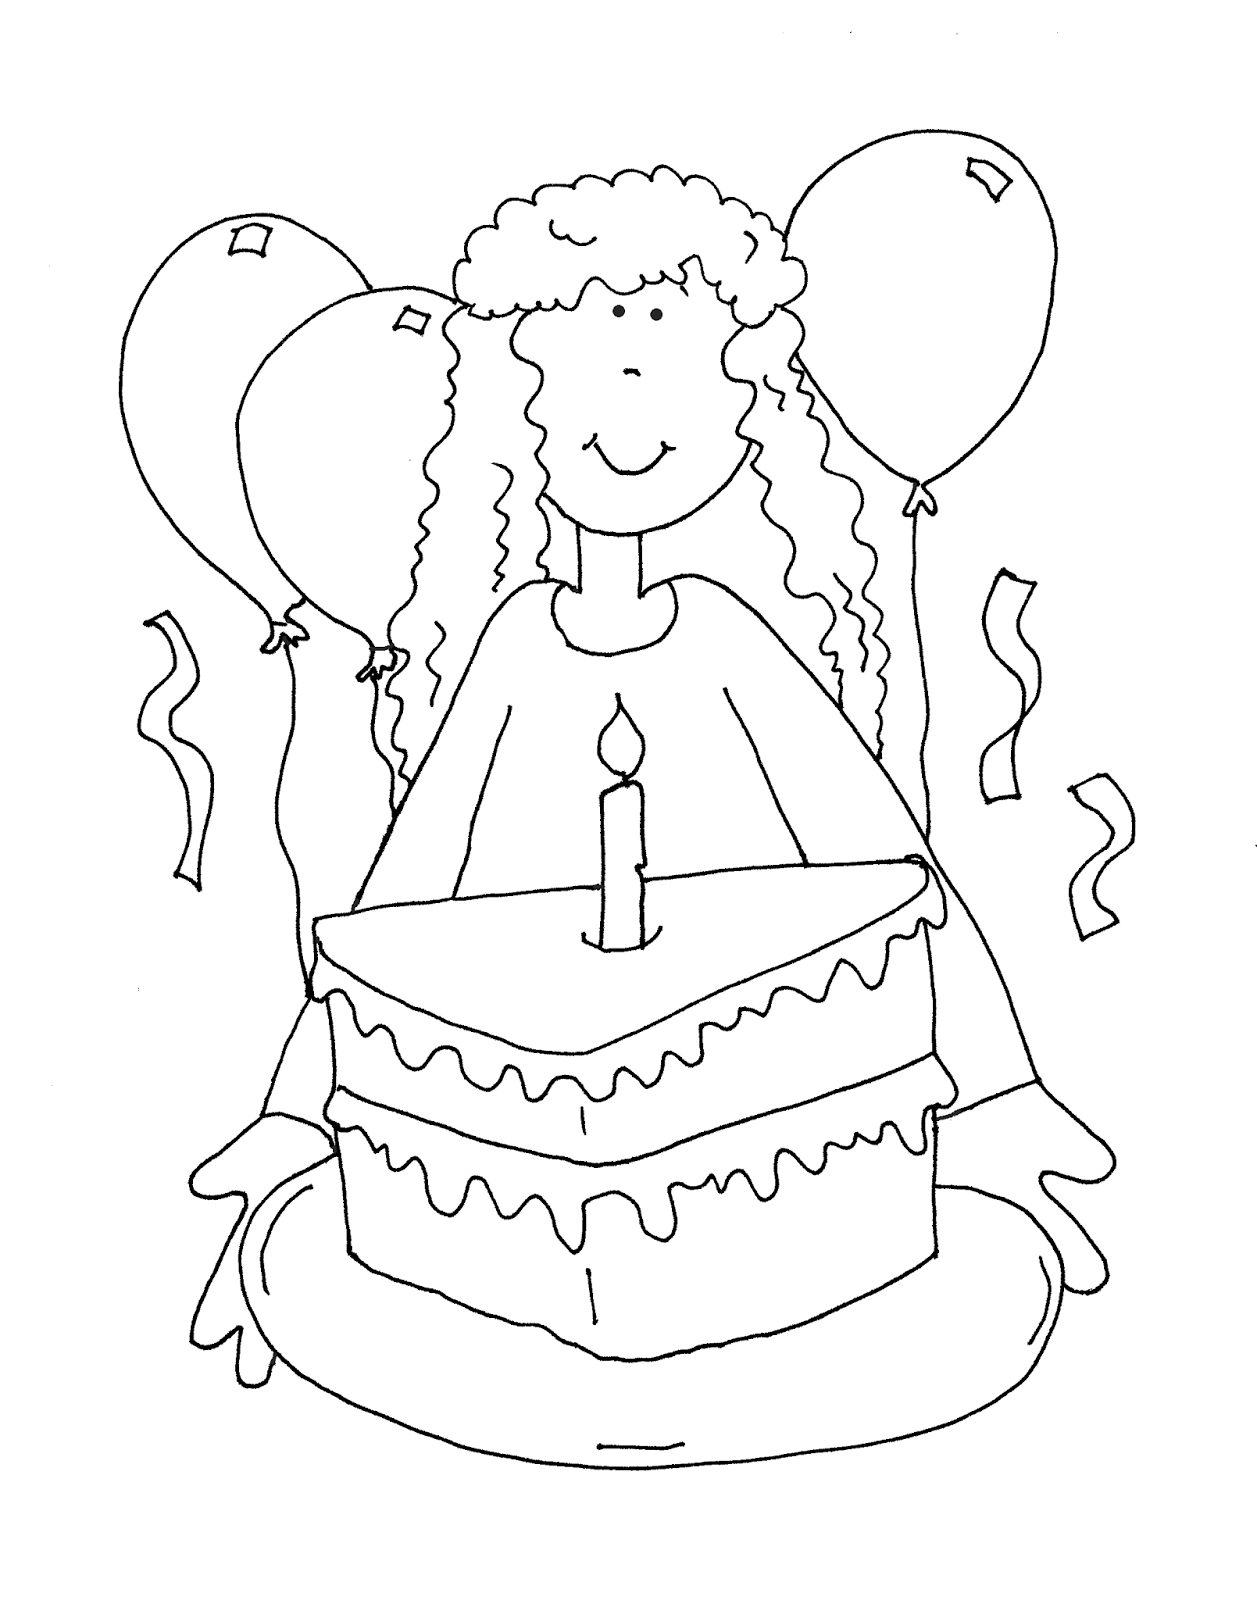 birthday girl coloring pages happy birthday girl coloring page for kids holiday birthday coloring pages girl